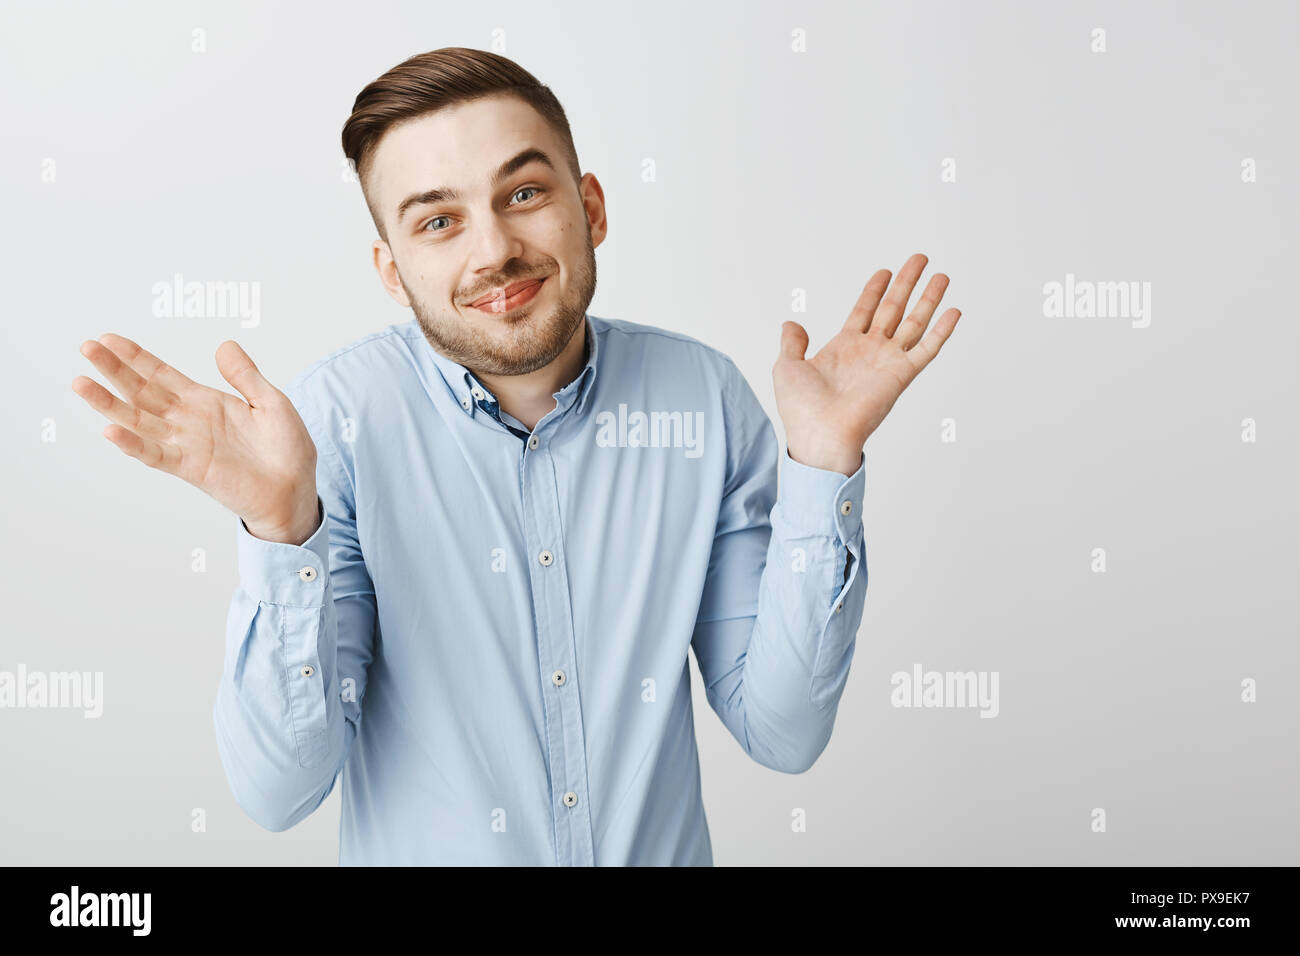 No idea guess yourself. Portrait of happy carefree and careless good-looking male coworker in blue shirt shrugging with raised palms tilting head and smiling with sorry look being unaware and clueless Stock Photo